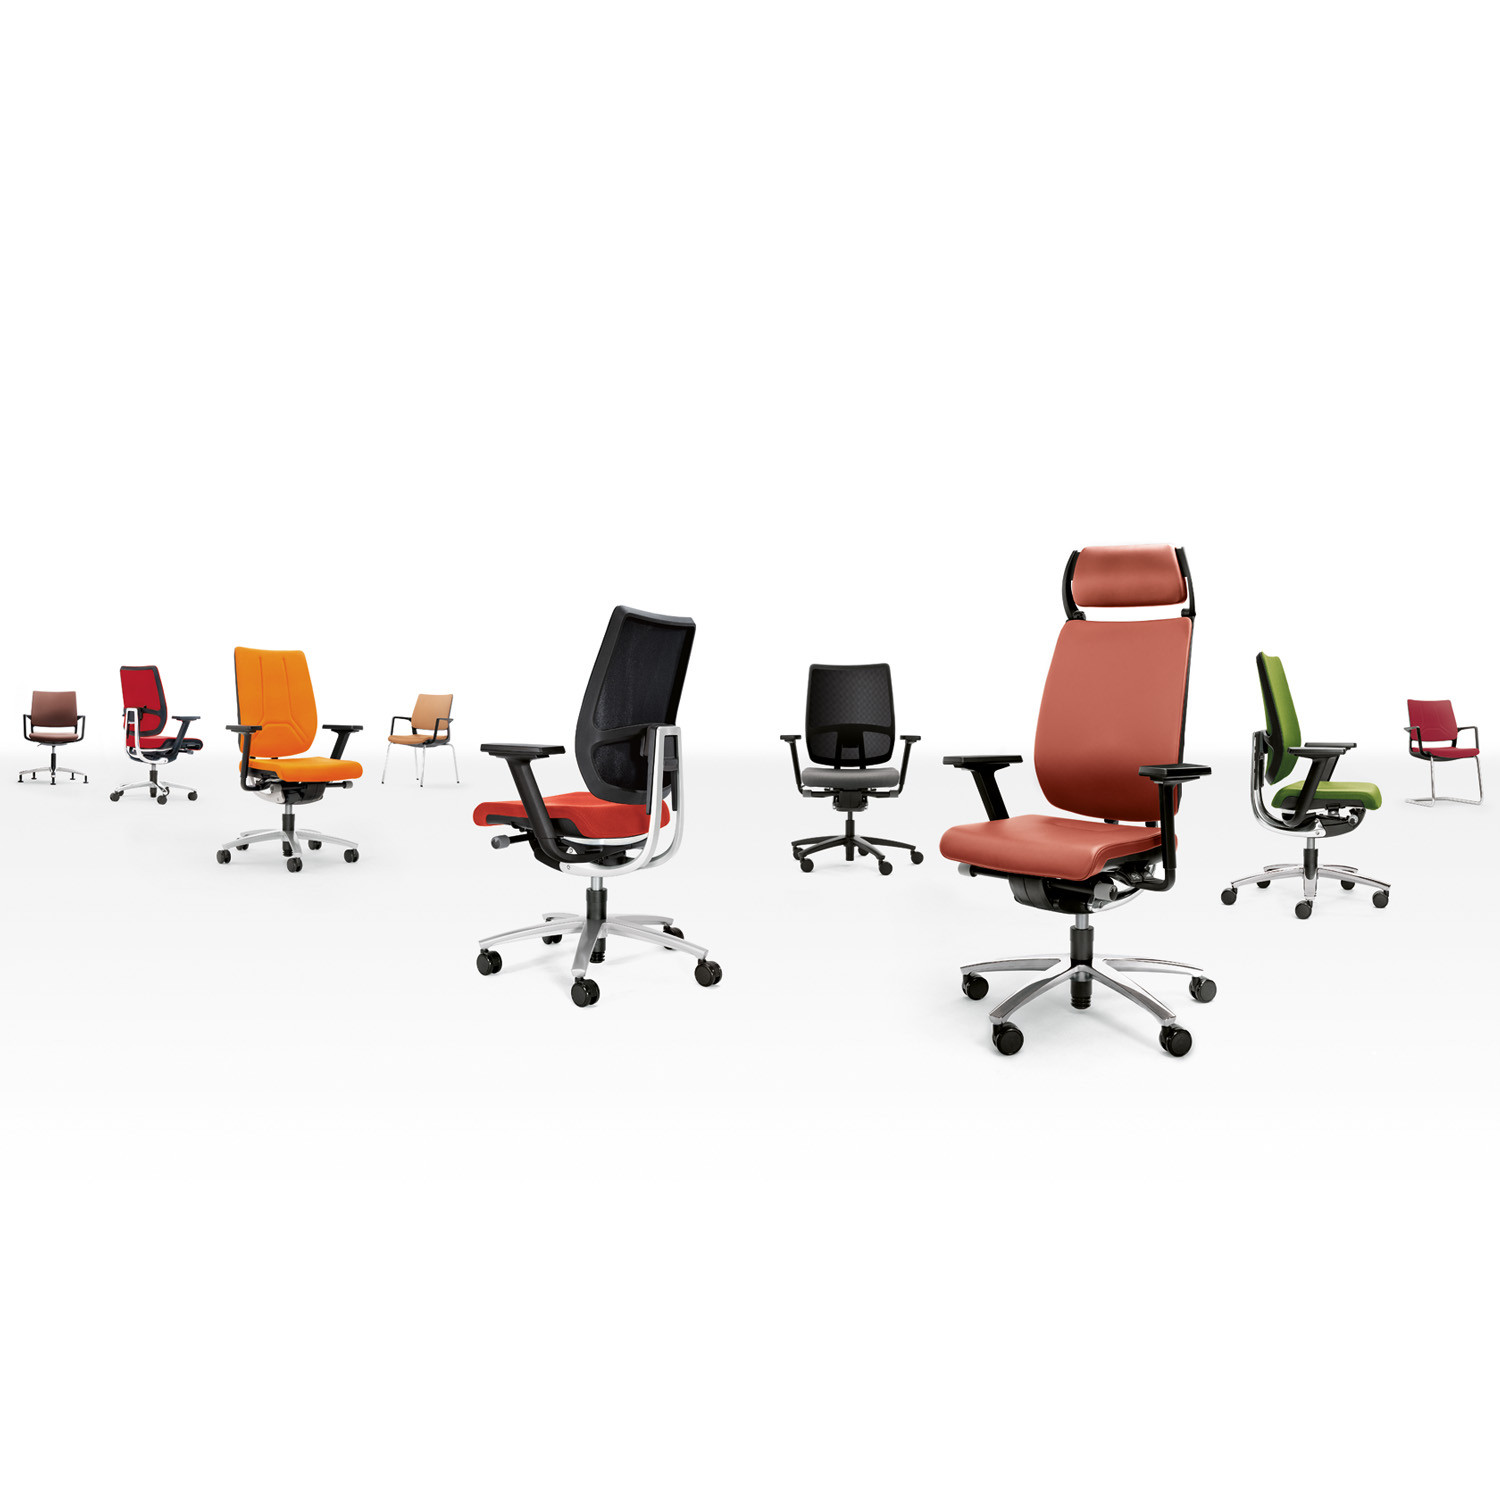 Sedus Swing Up Office Seating Range